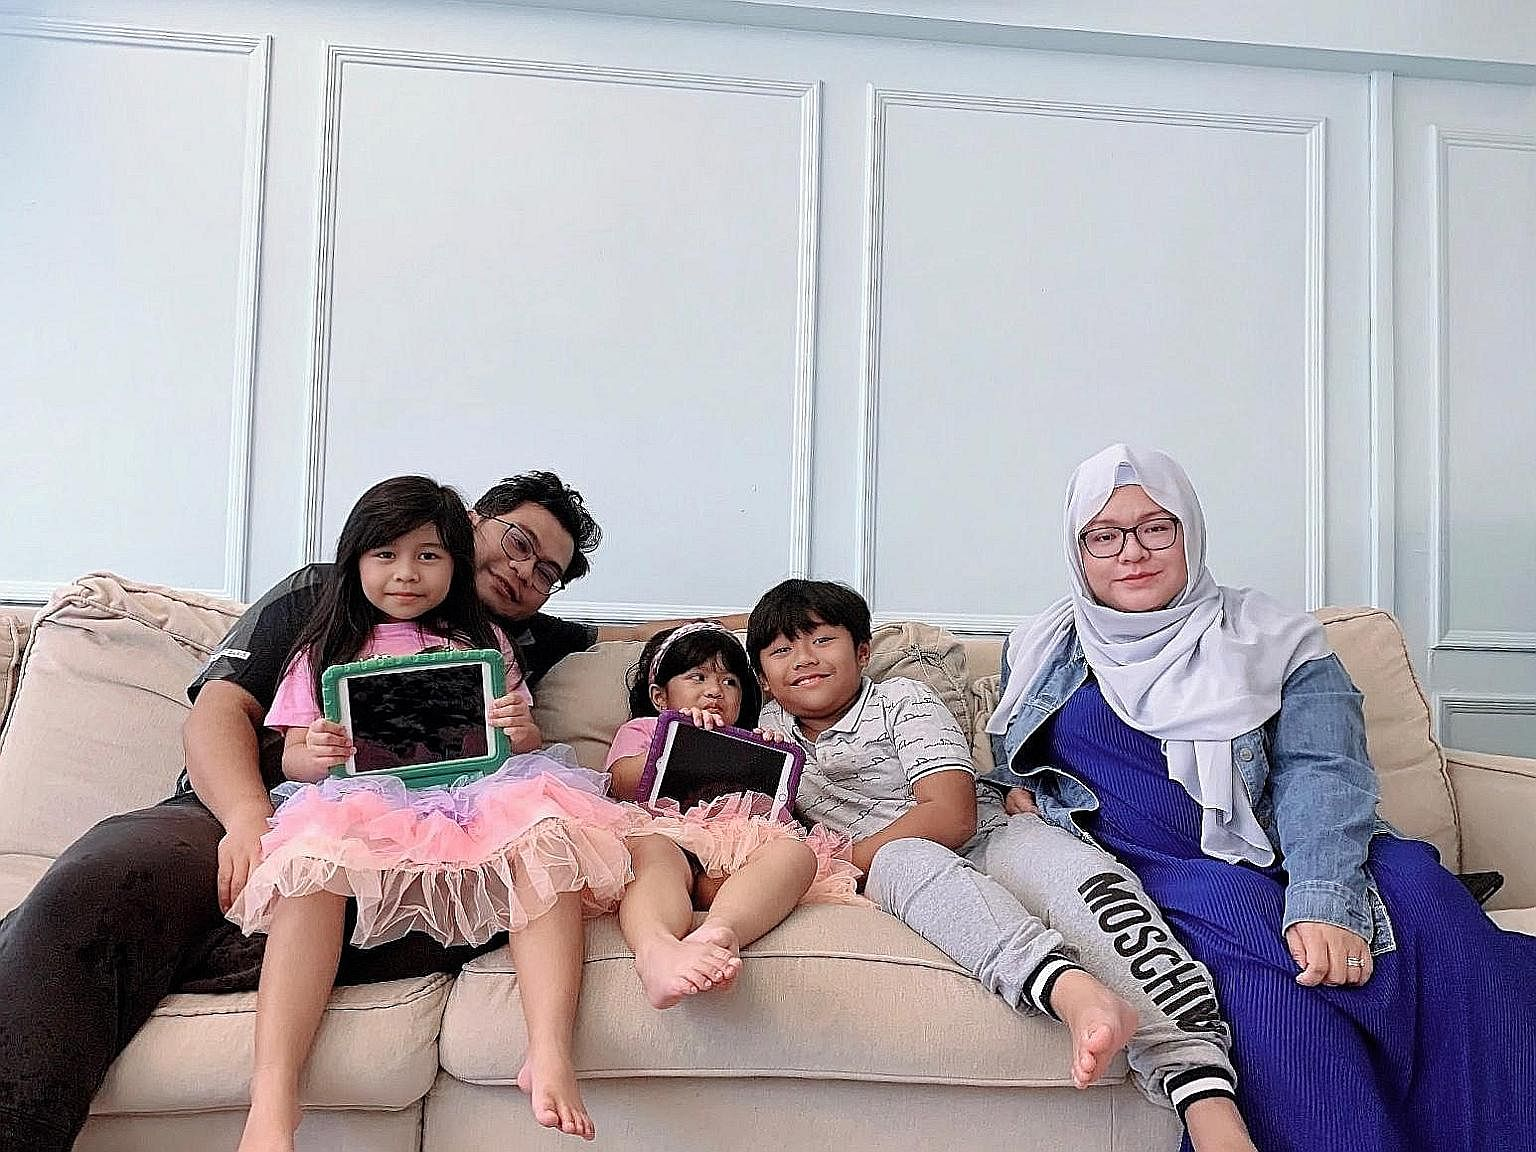 Ms Nur Hafizah Sulaiman's husband, Mr Mohammed Fariheen Mohamed Faroukh, whose work schedule is more flexible than hers, supervised their children's home-based learning recently, while she attended to work calls.